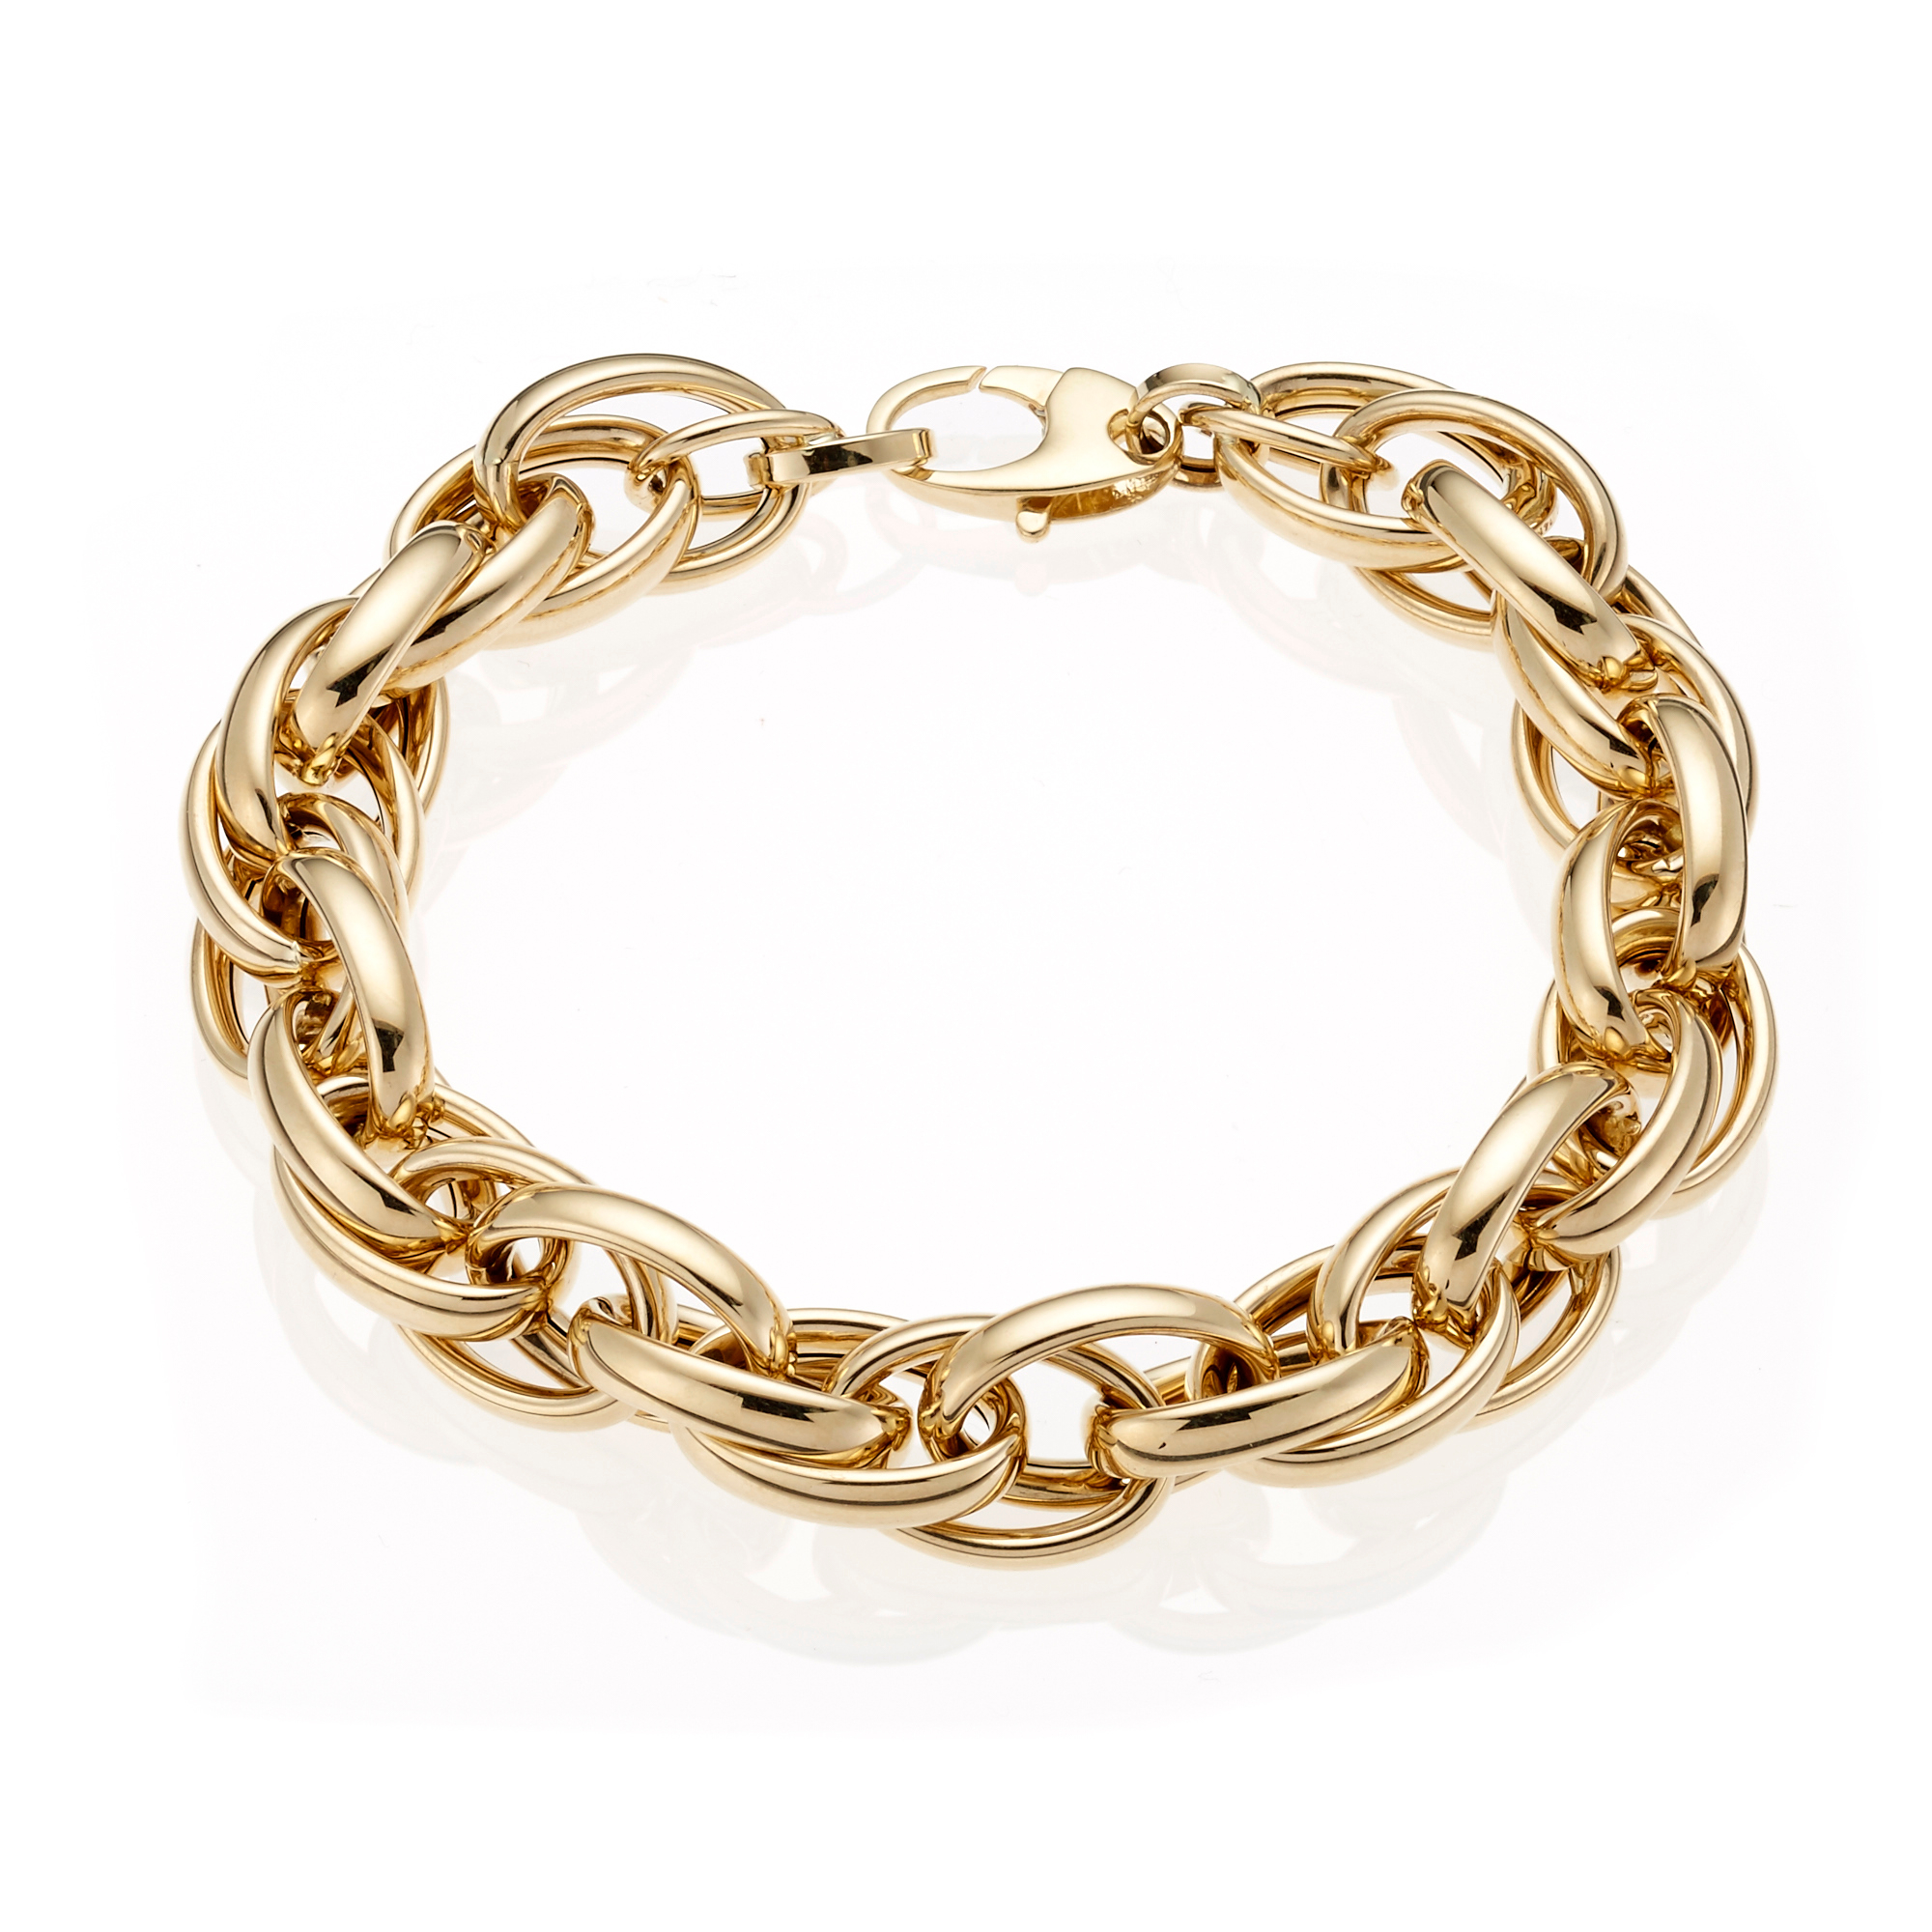 Gold Twisted Oval Link Bracelet